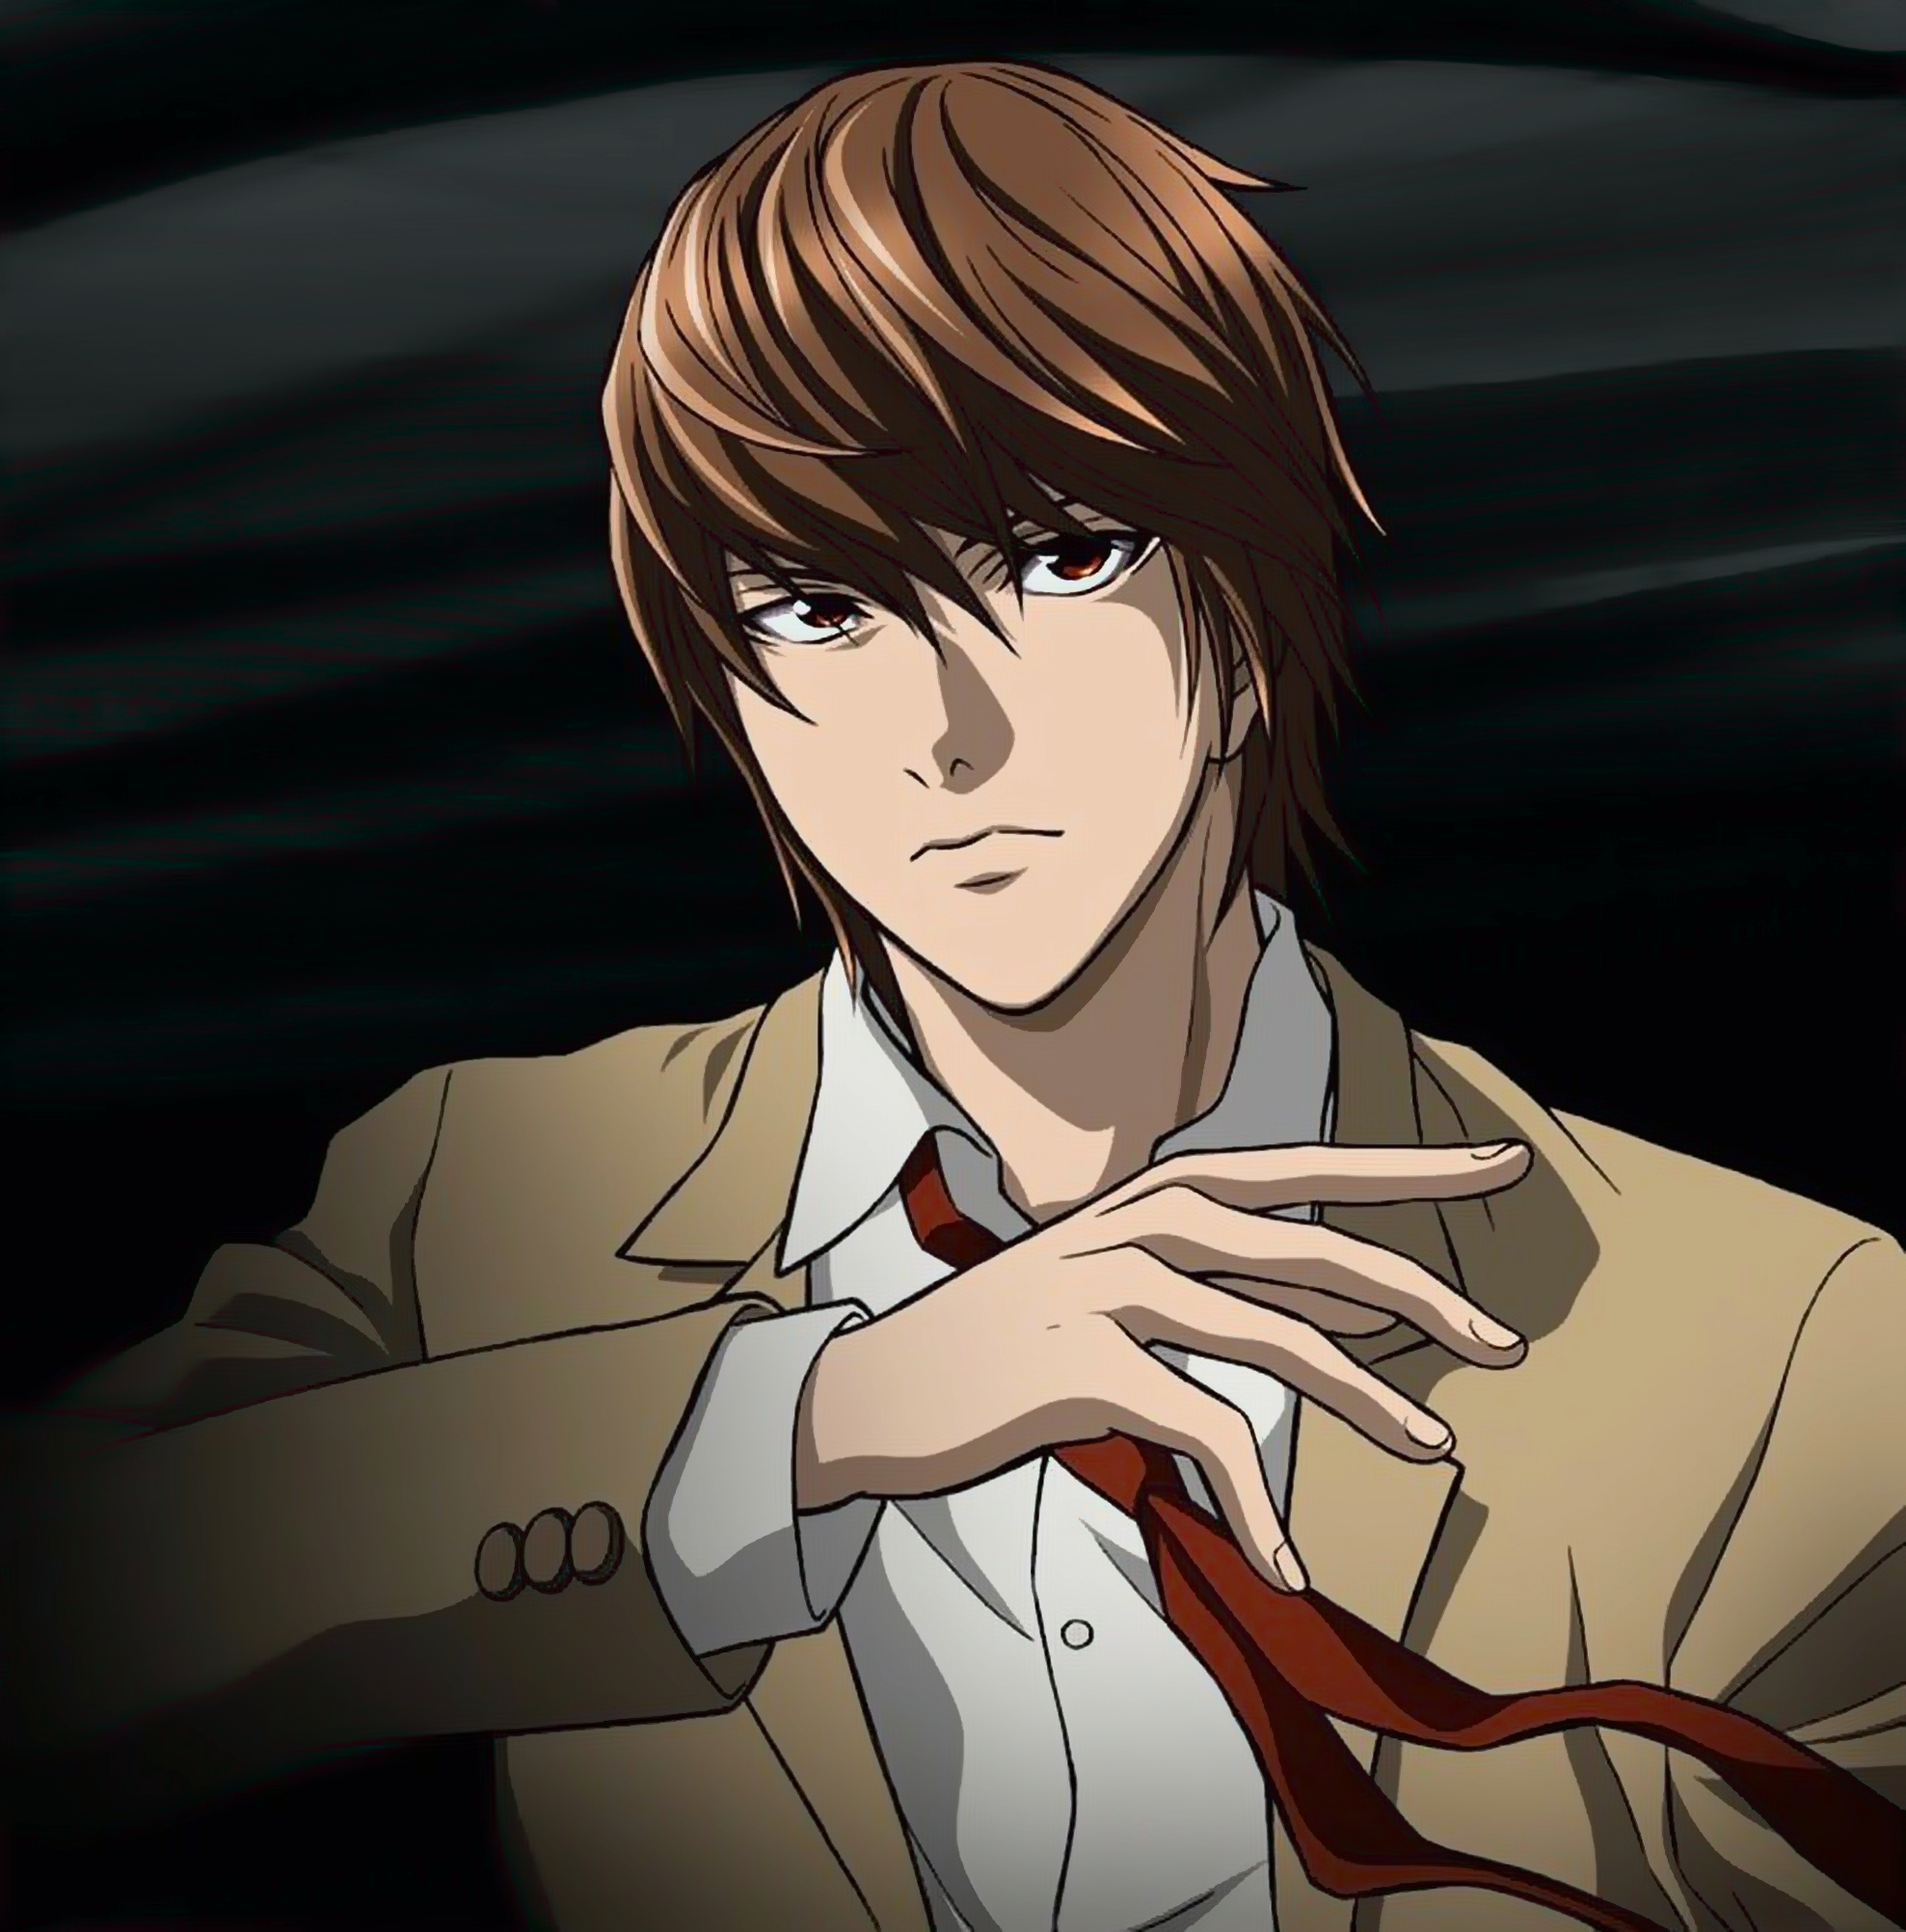 Light Yagami | Villains Wiki | Fandom